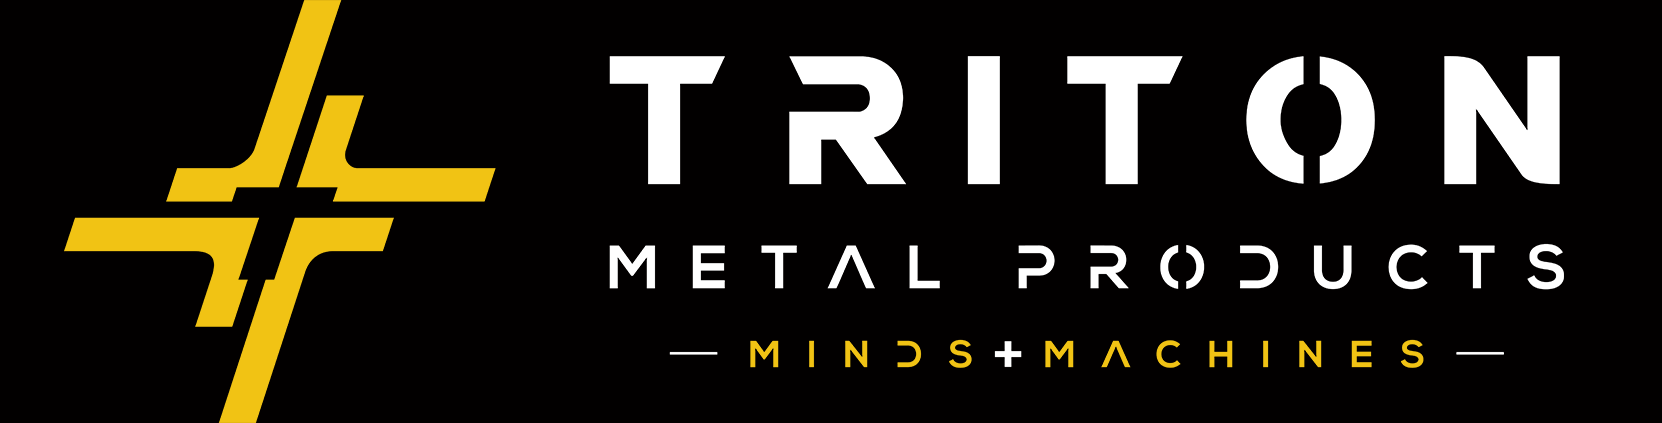 Triton Metal Products